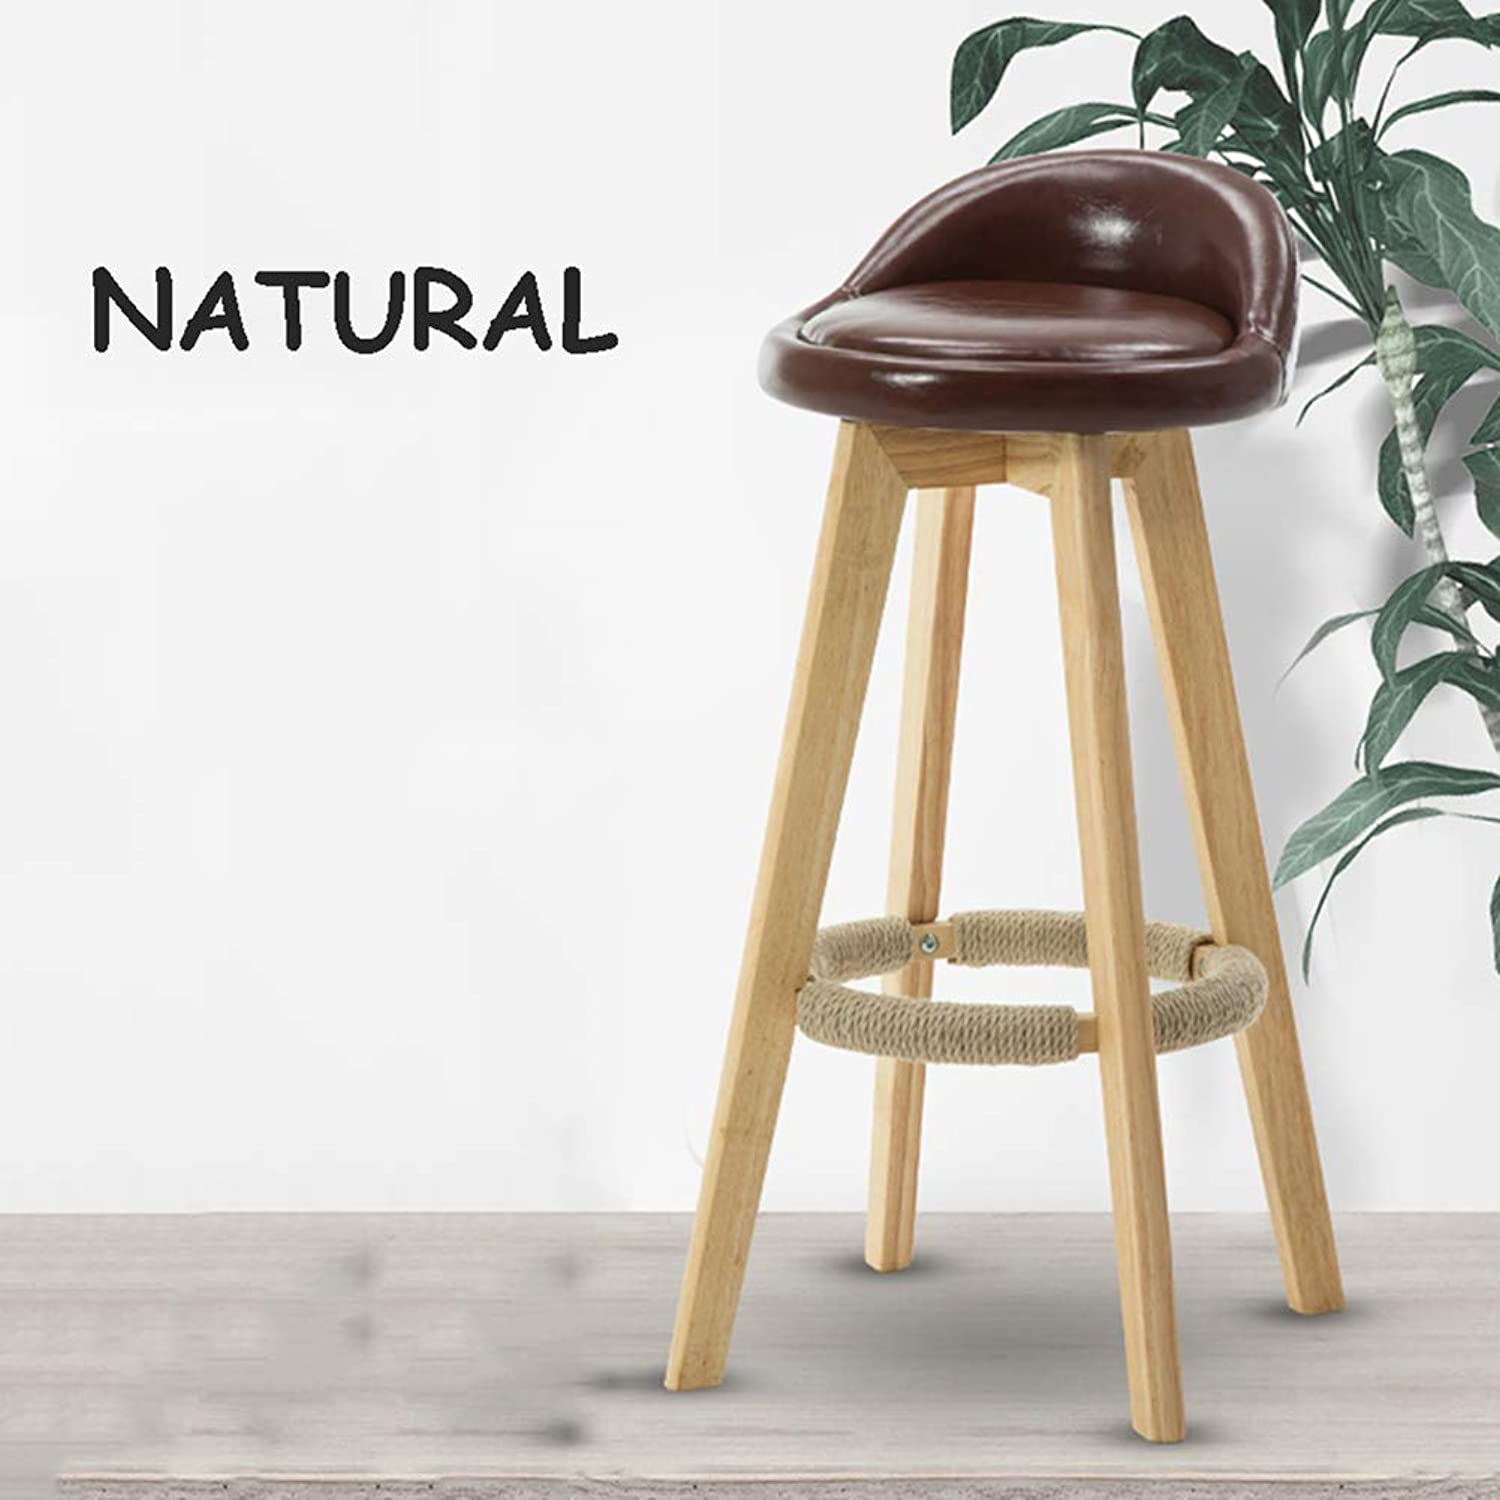 High Chair, Simple Home Solid Wood Chair High Stool Bar Chair, Bench Back Leisure Chair, 73 cm